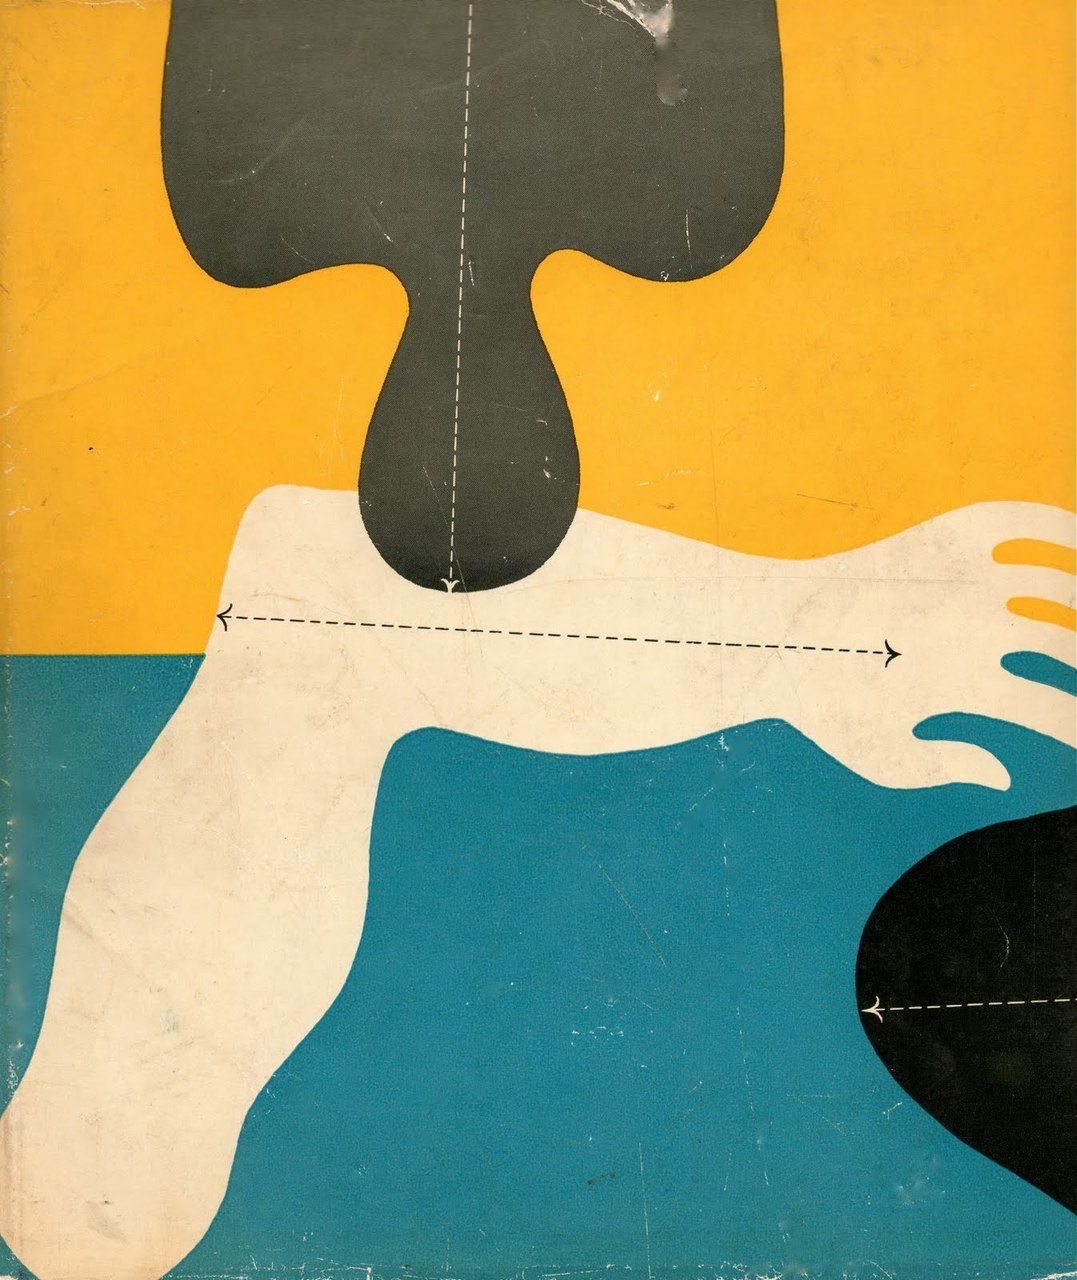 Anatomy For Interior Designers 1948 Back Of Book Cover Designed By Alvin Lustig Graphic Design Posters Vintage Poster Art Graphic Poster